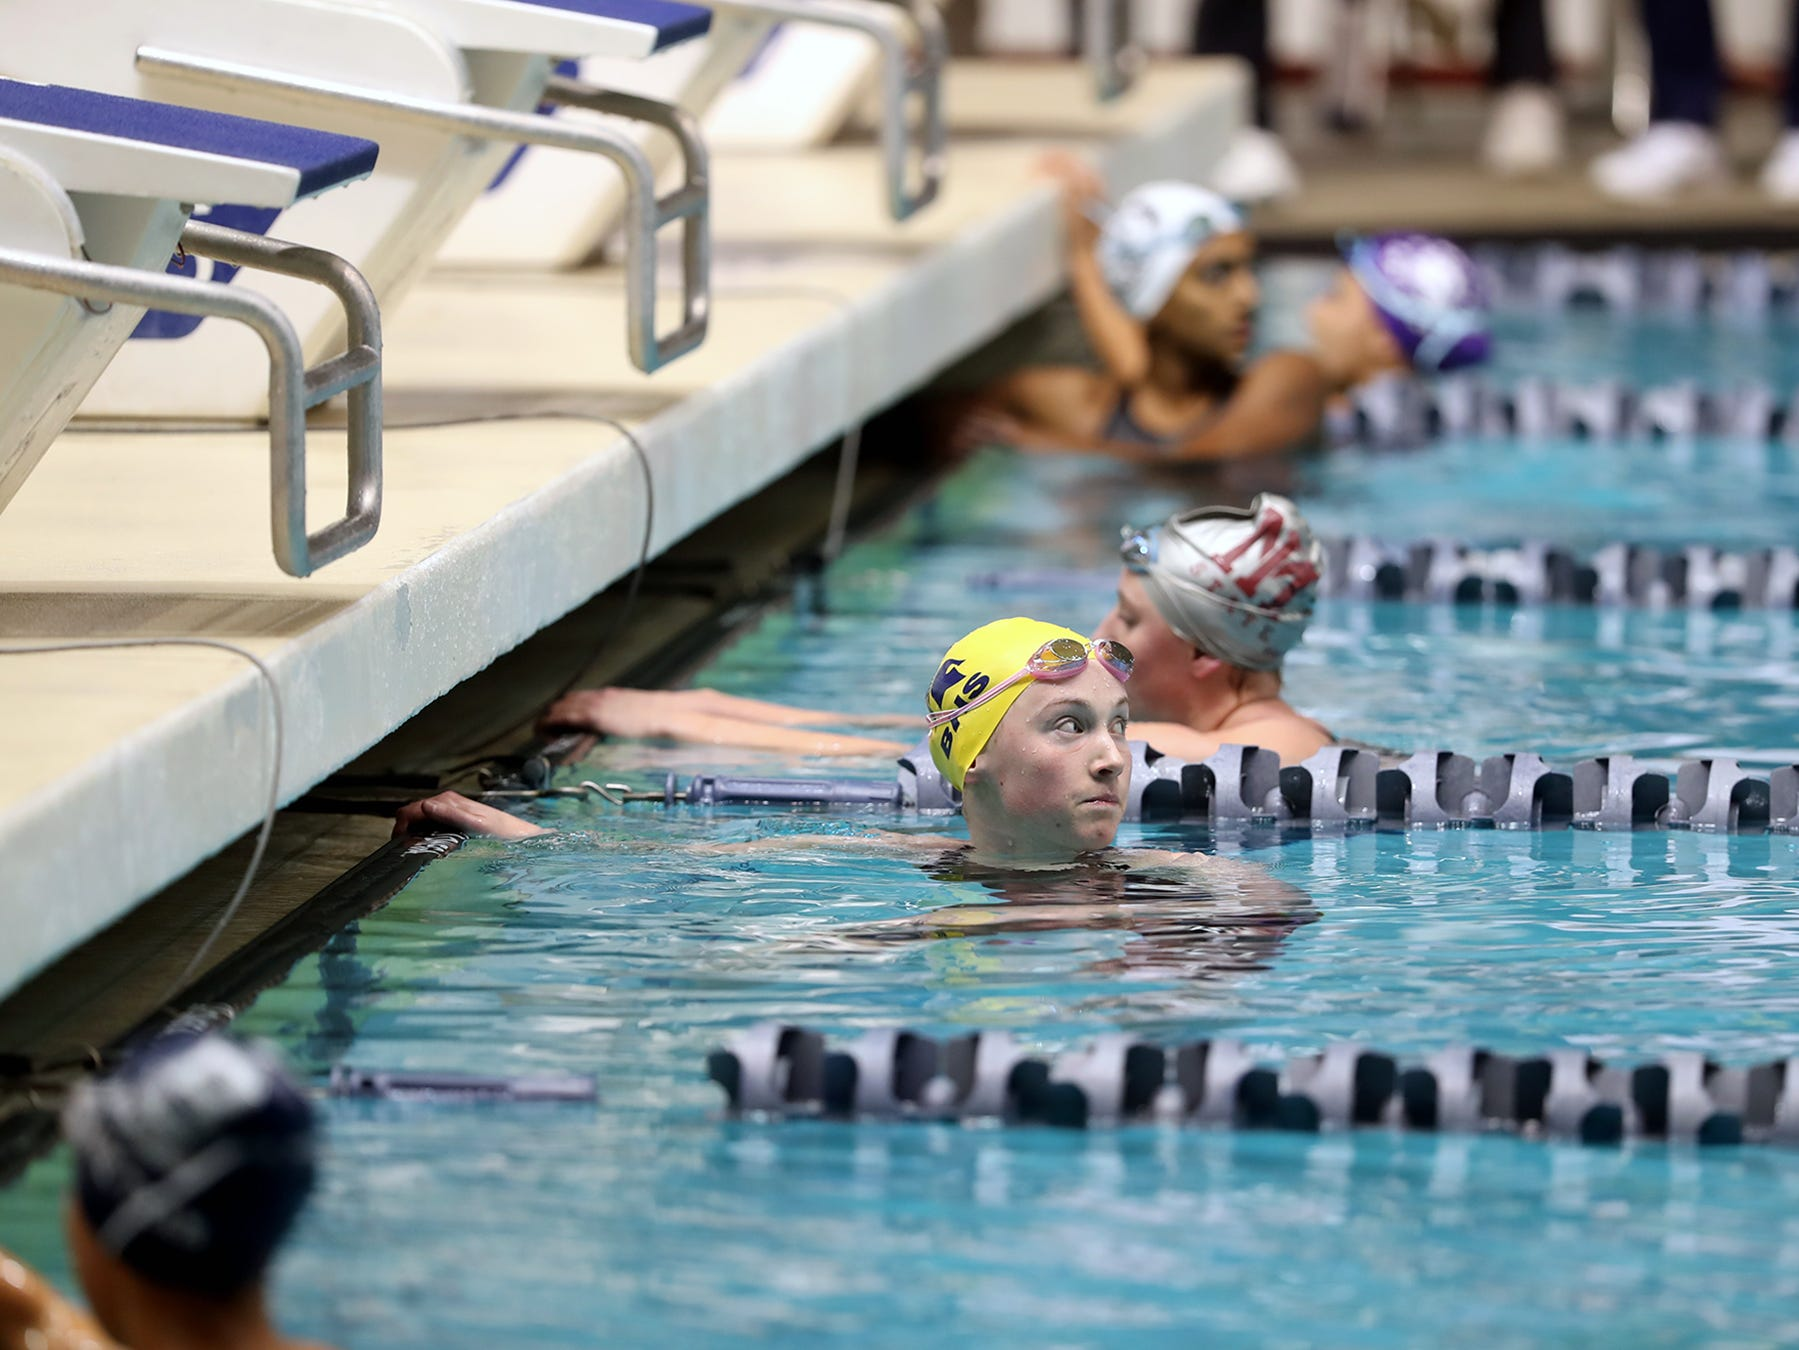 Bainbridge  swimmer Margaret Hayes looks back to the scoreboard after  the 3A girls 200 IM medley at the Washington State Swim & Diving Championships at the King County Aquatic Center on Saturday, November, 10, 2018.She lead the whole race but was disqualified.